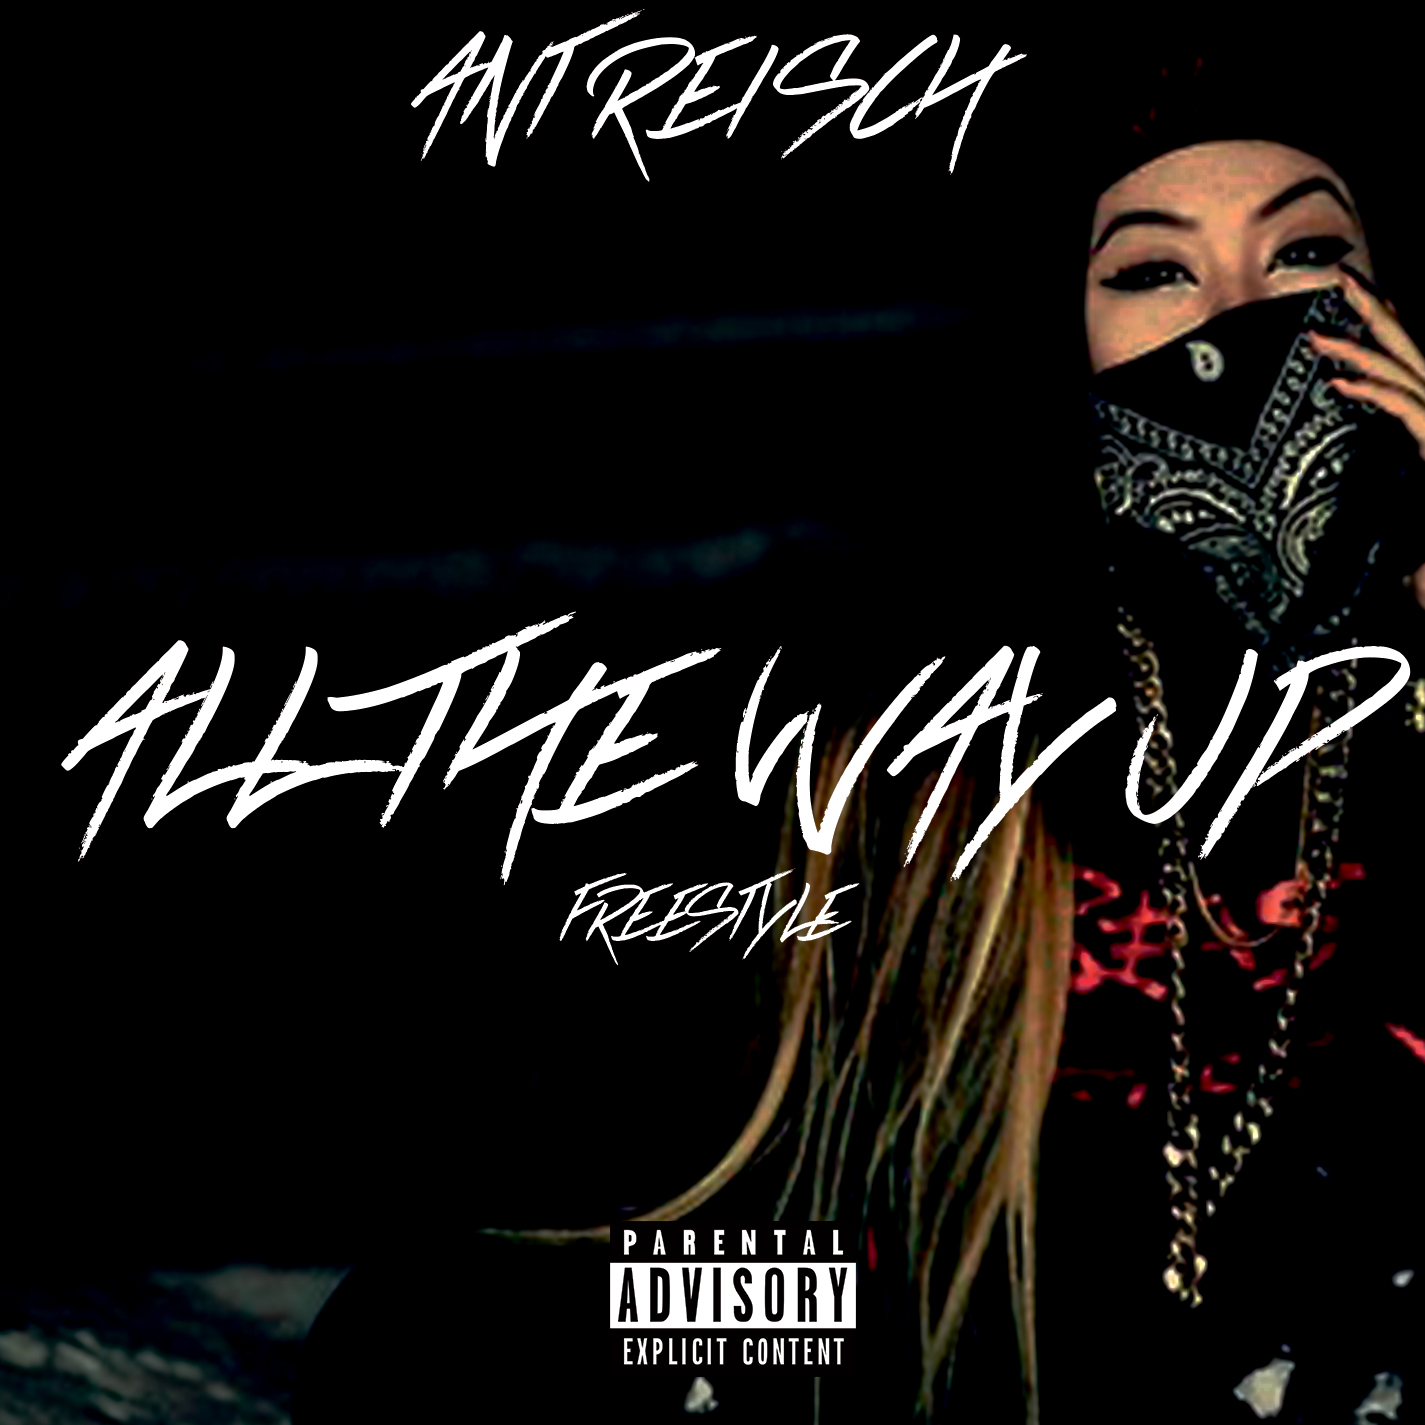 New Music: Ant Reisch – All The Way Up (Freestyle)